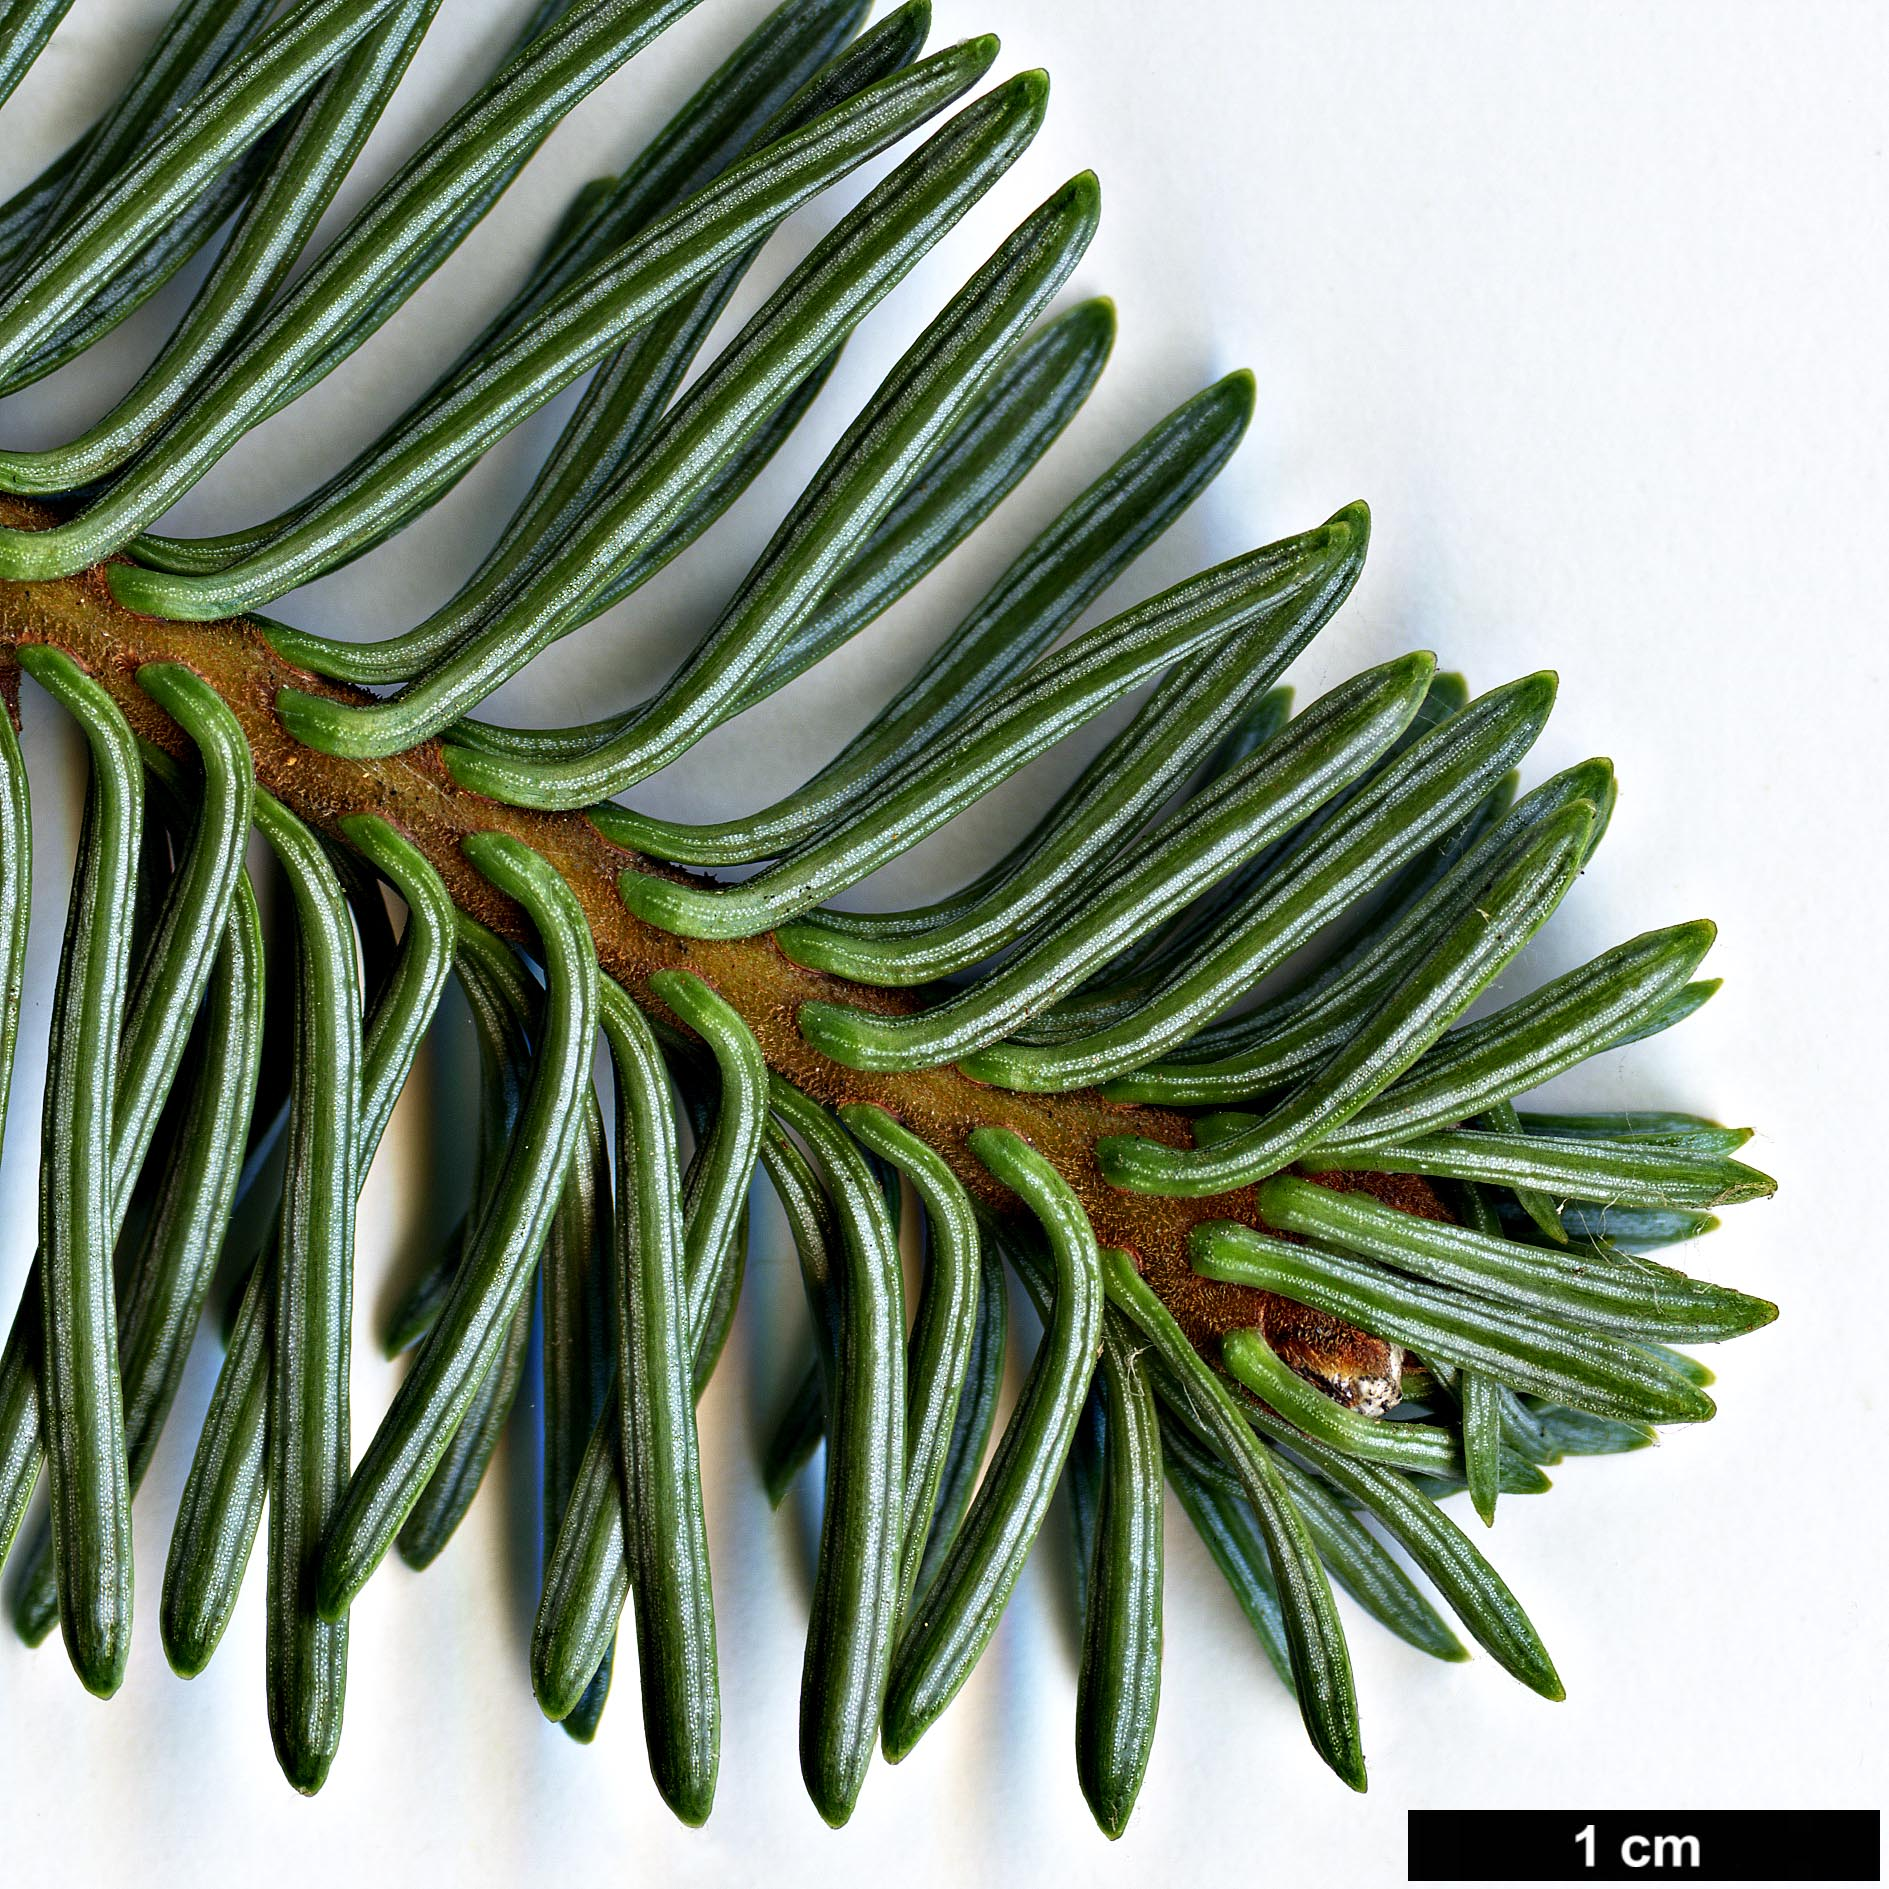 High resolution image: Family: Pinaceae - Genus: Abies - Taxon: procera - SpeciesSub: 'Glauca'